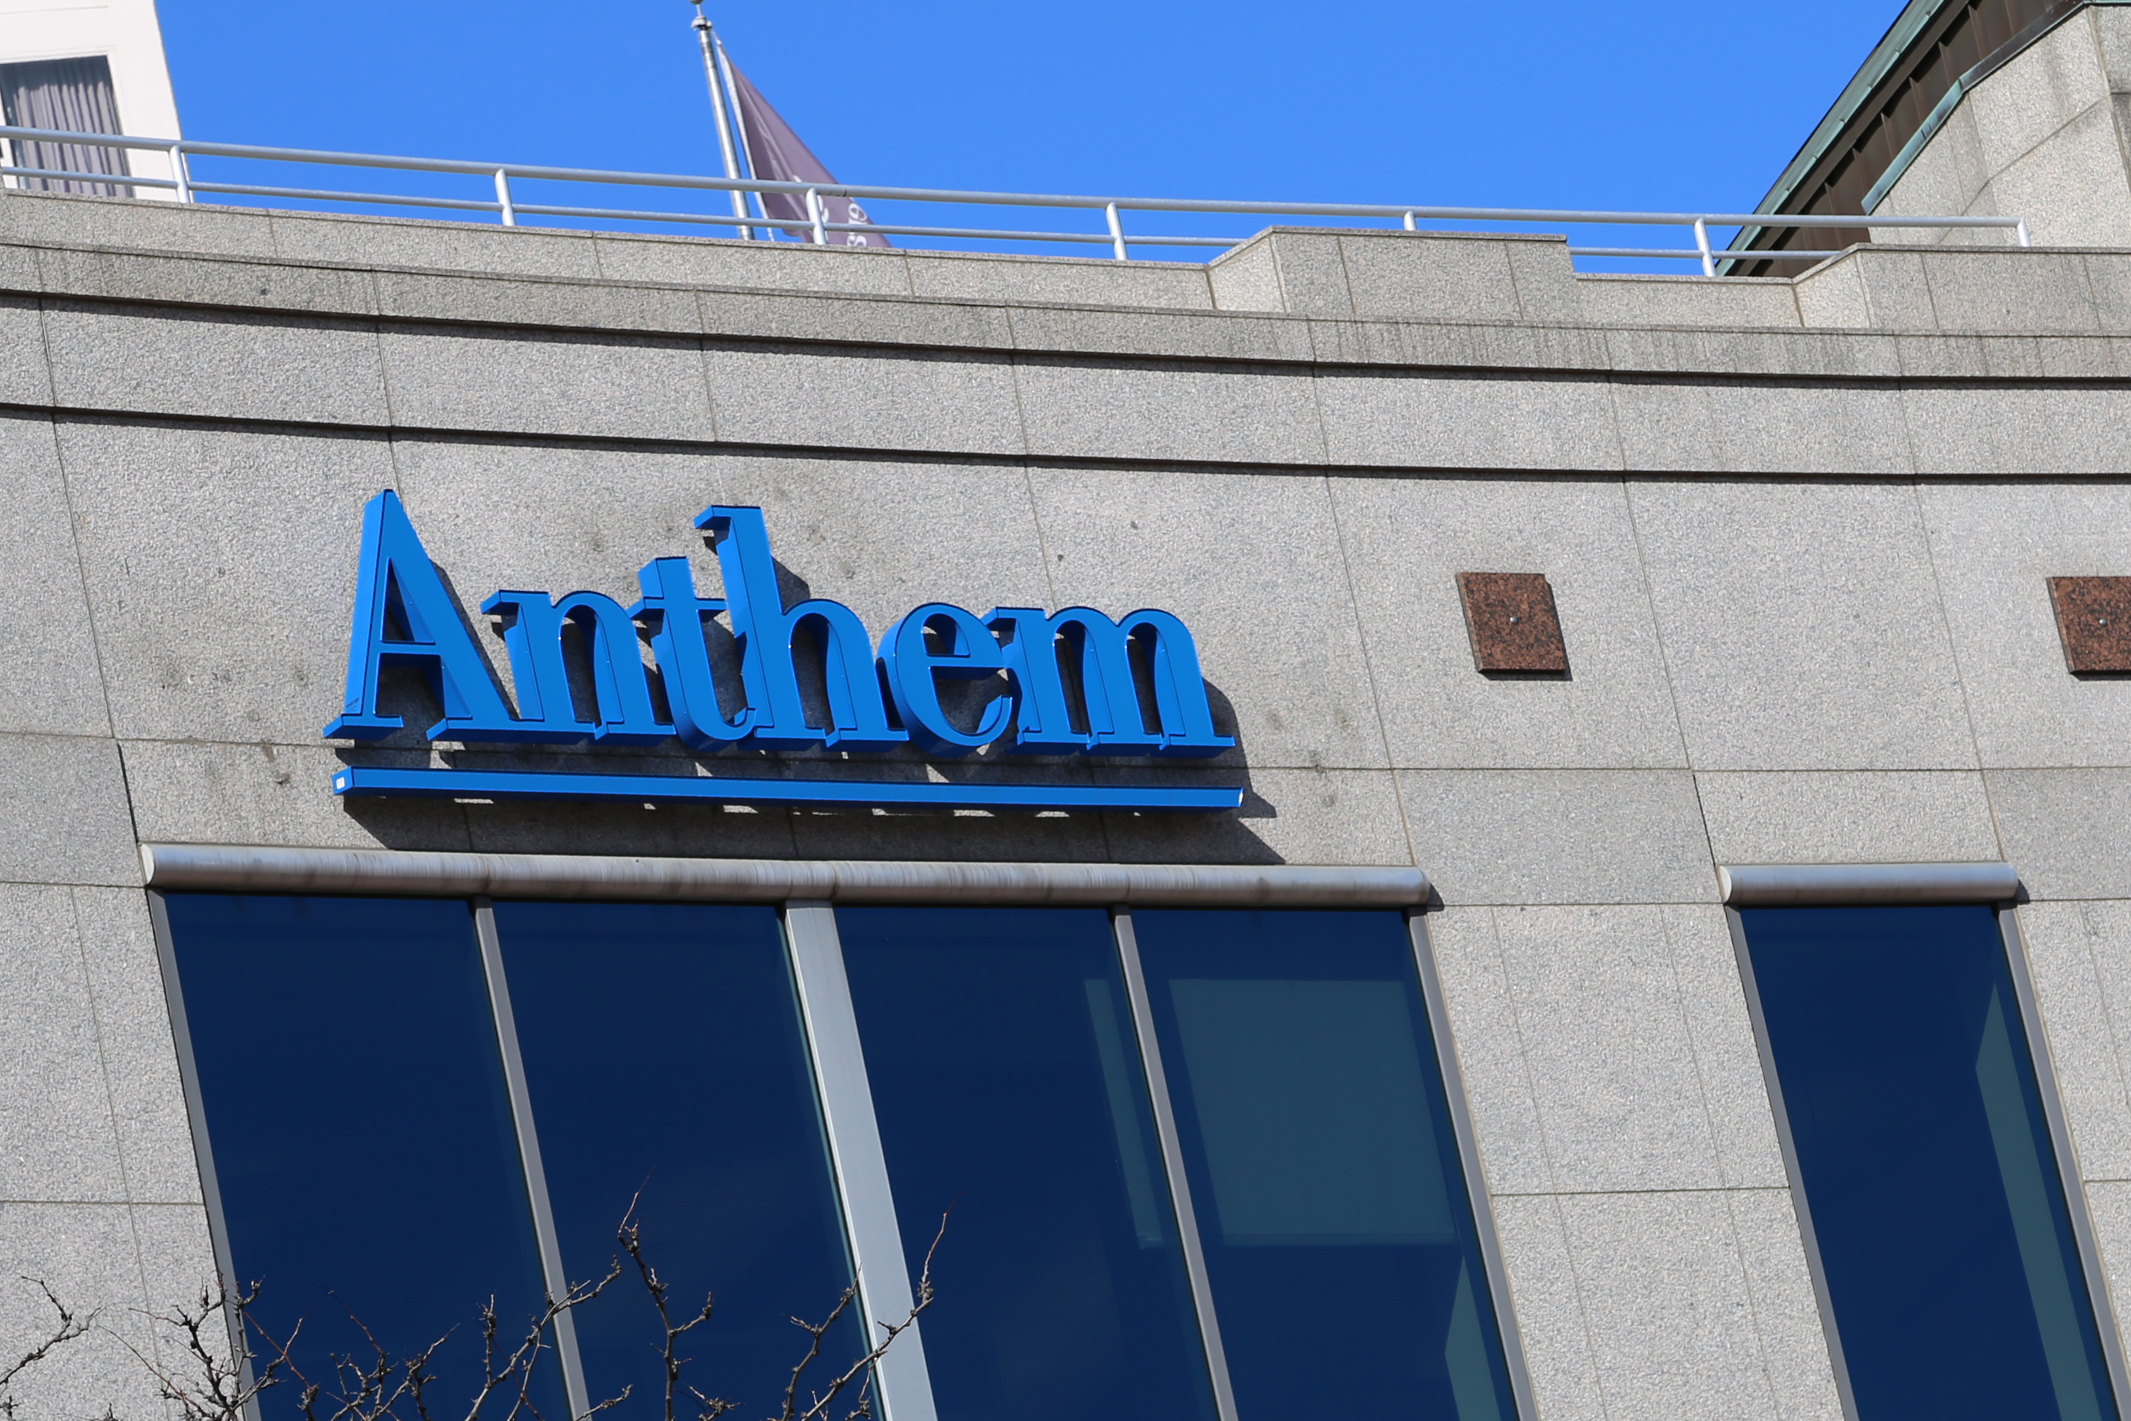 Anthem is based in Indianapolis, Indiana (WFIU/WTIU News)